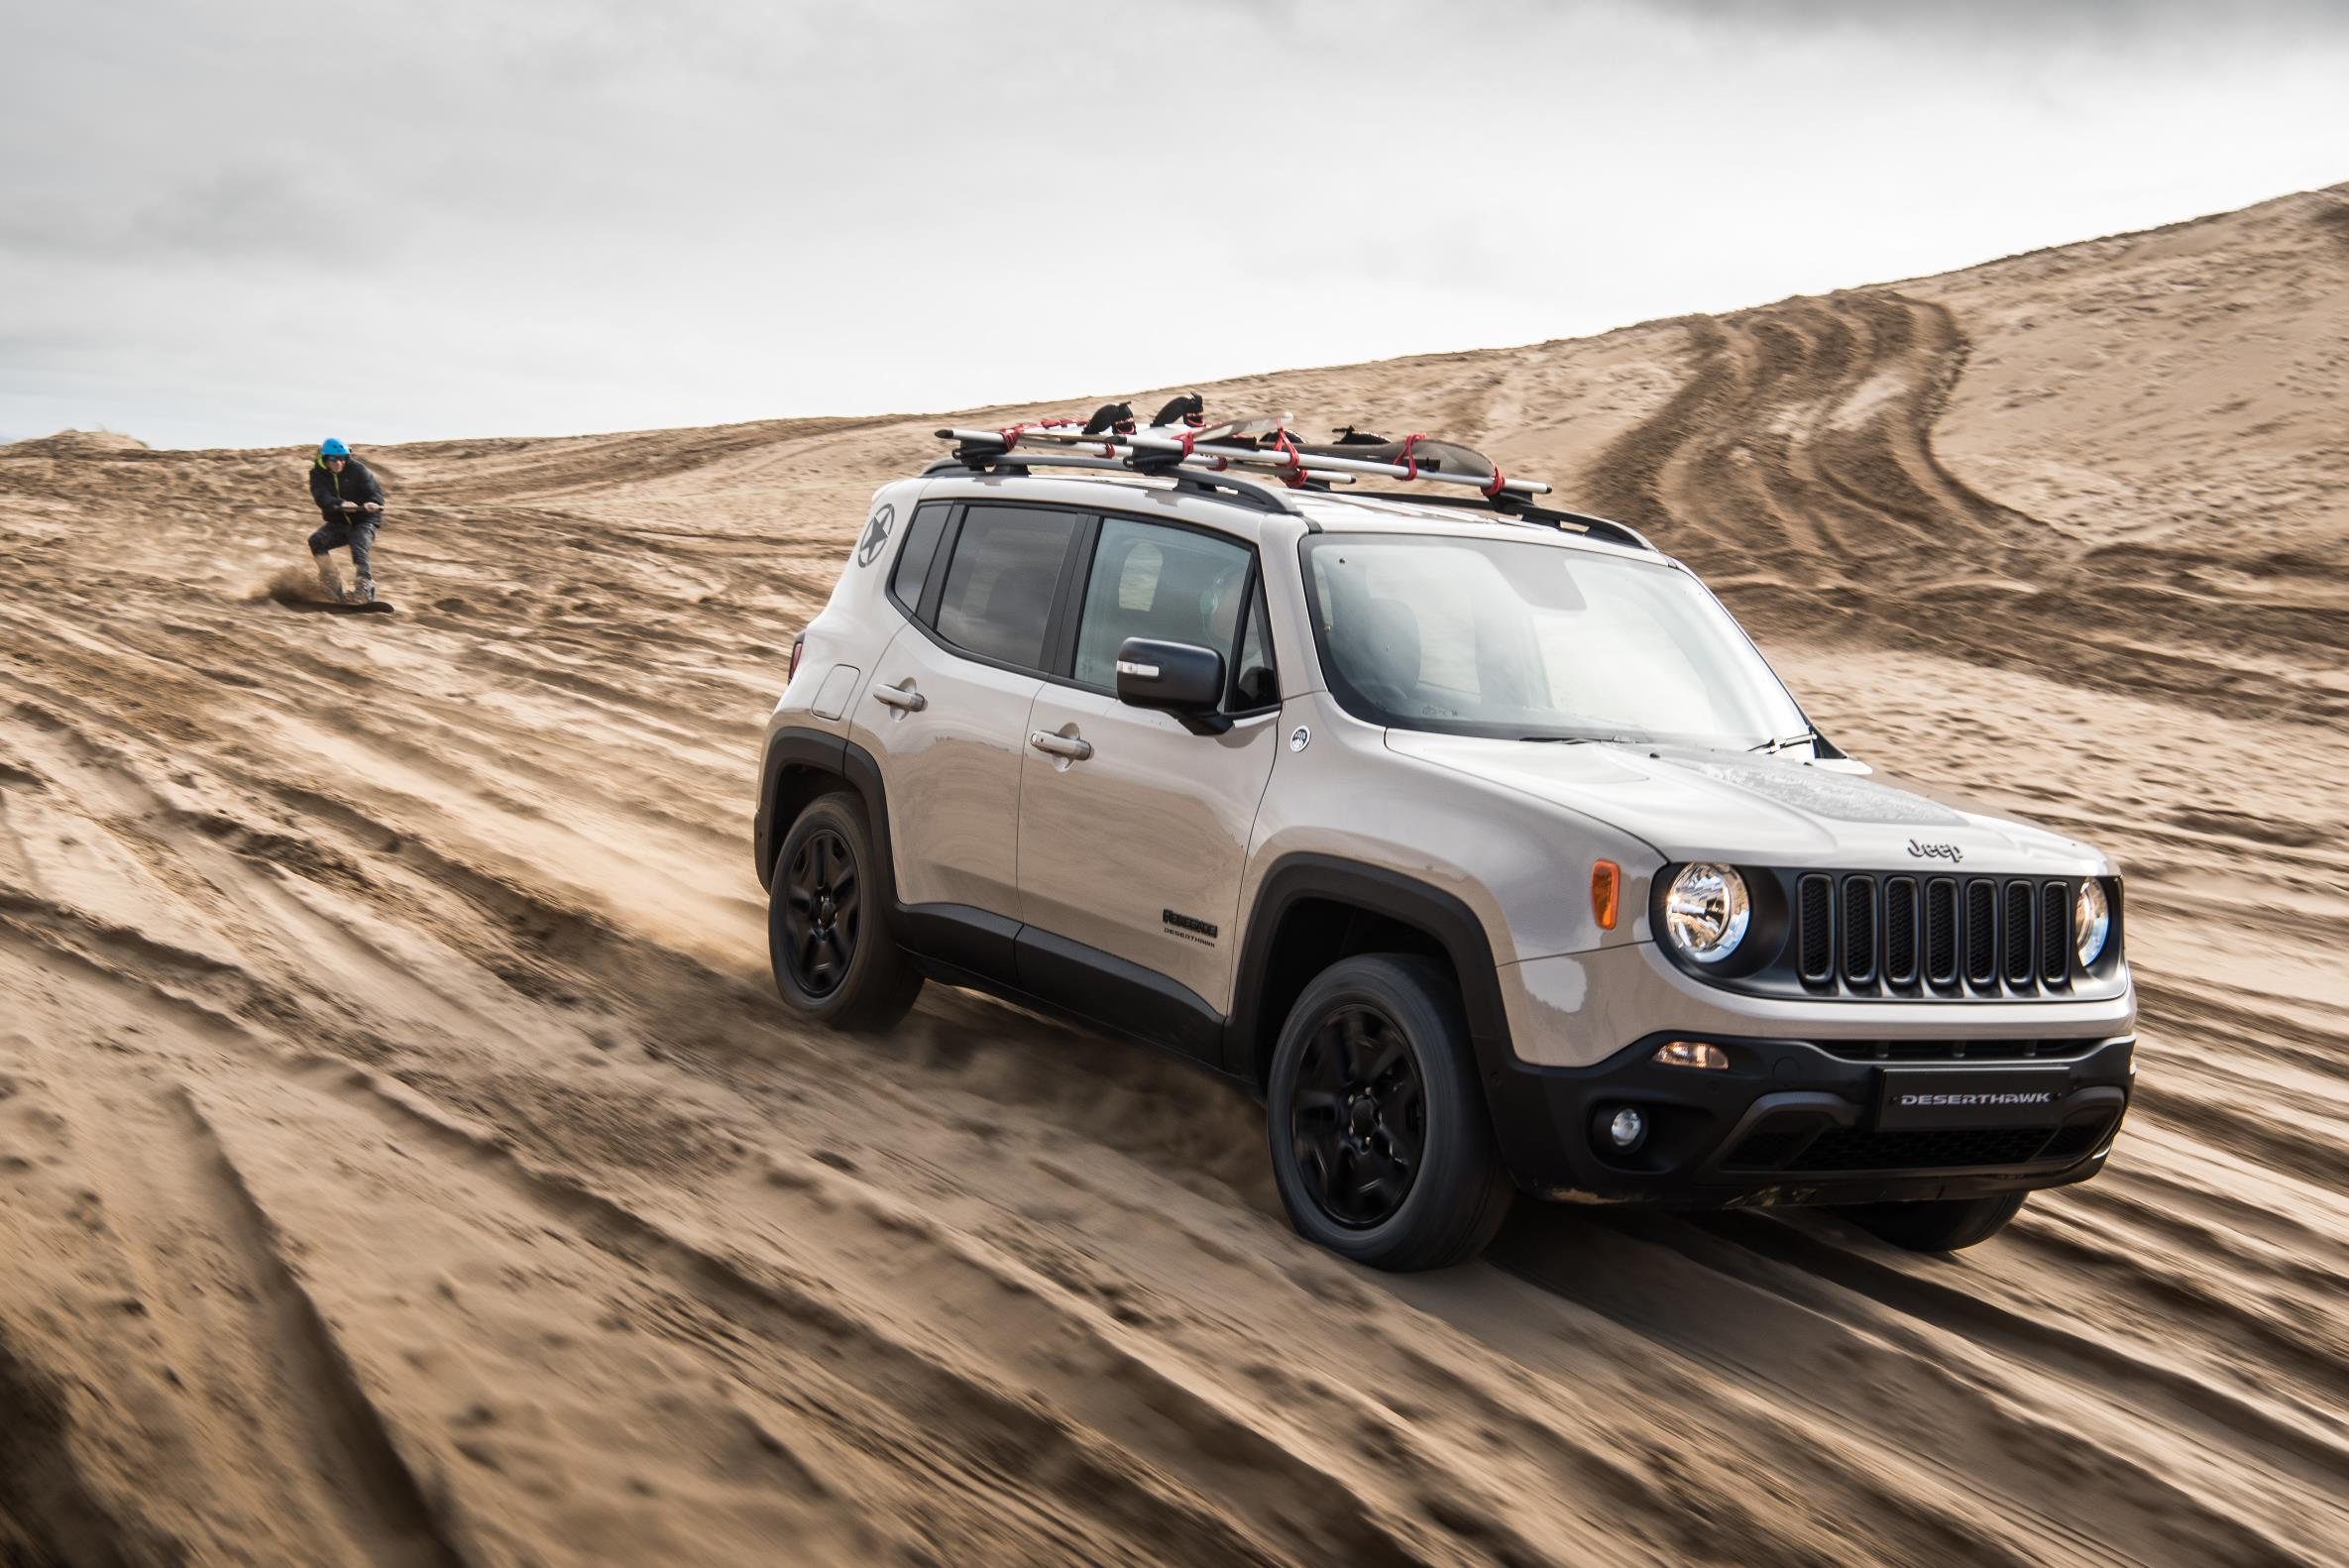 Jeep Renegade Desert Hawk >> Jeep Renegade Puts Its Desert Hawk Suit On It S Limited To